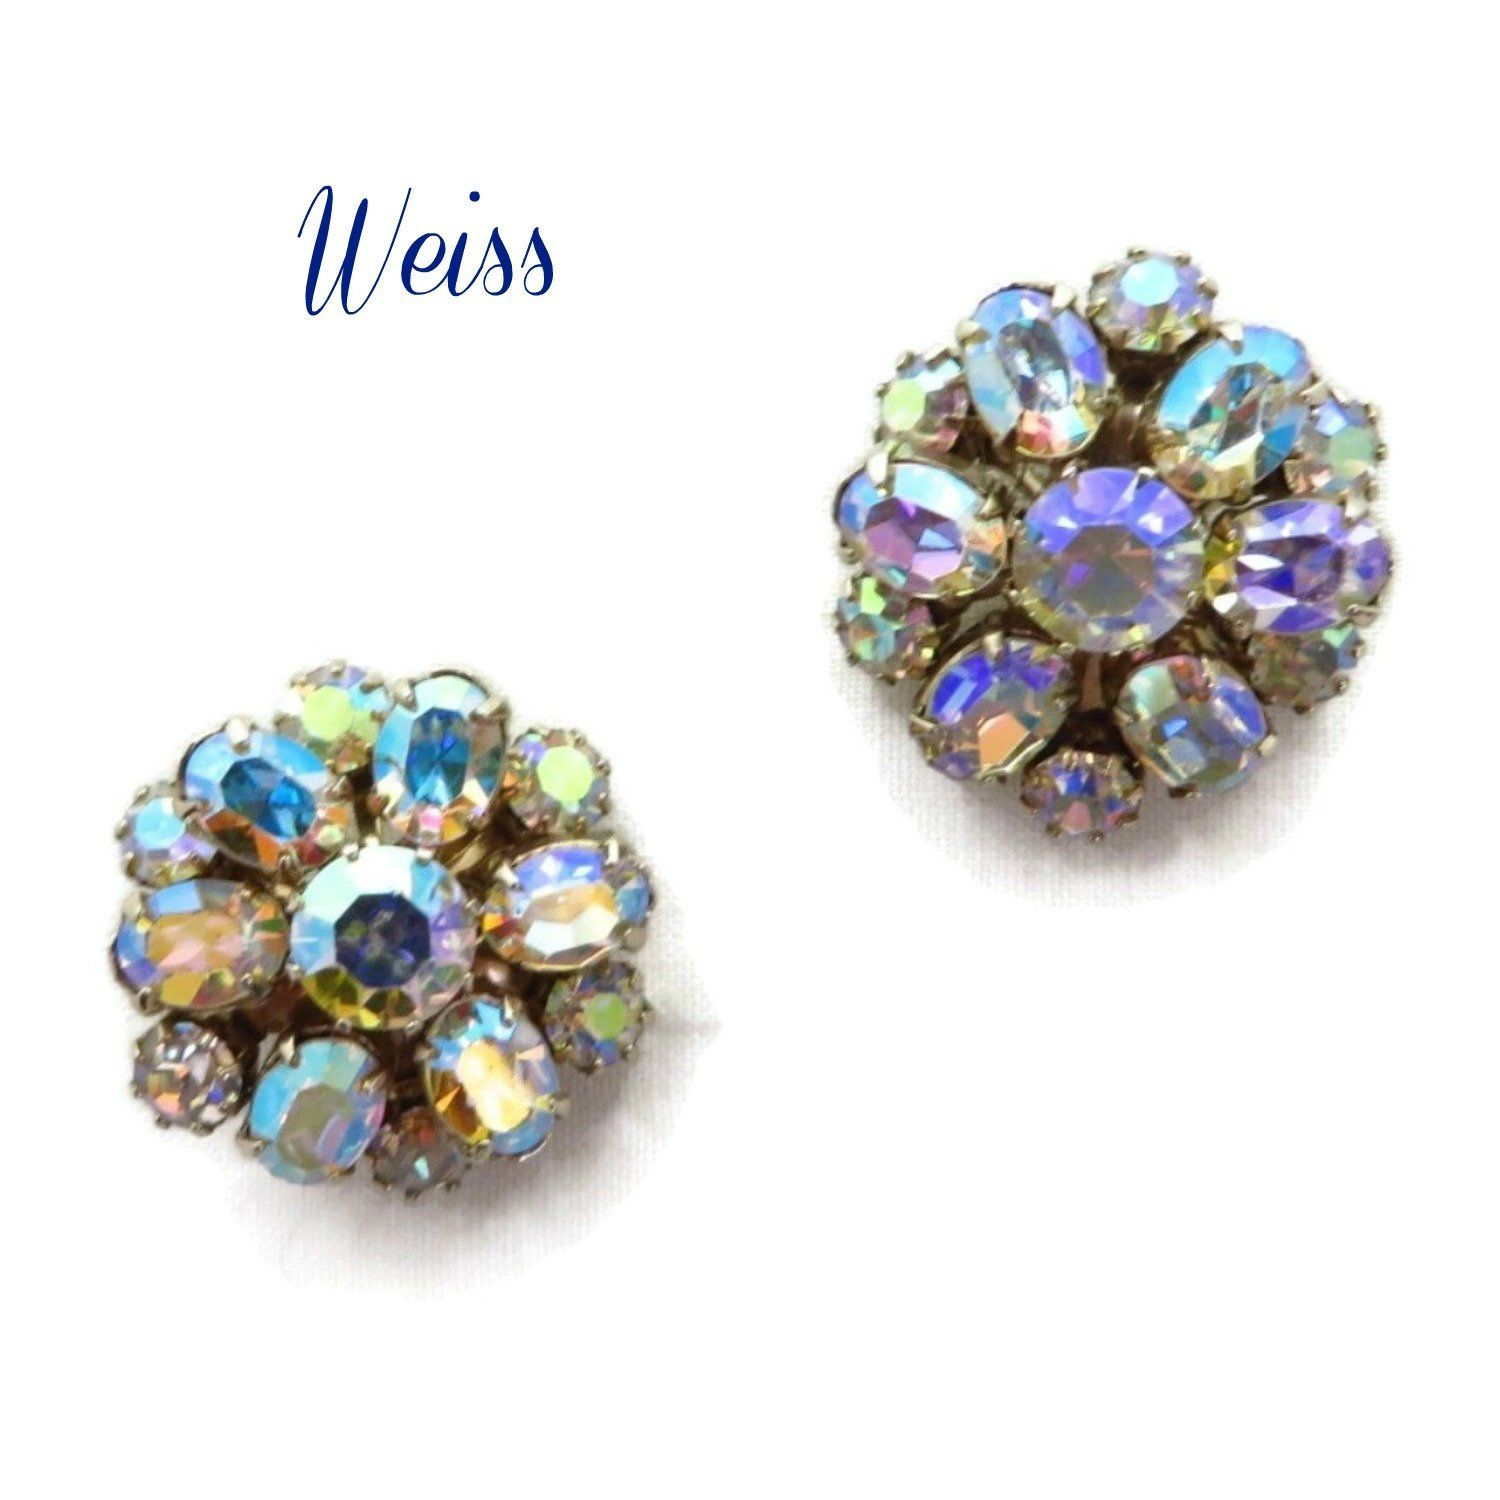 3f62eac54a53a Weiss AB Rhinestone Cluster Earrings - Vintage Clip-on Earrings in ...